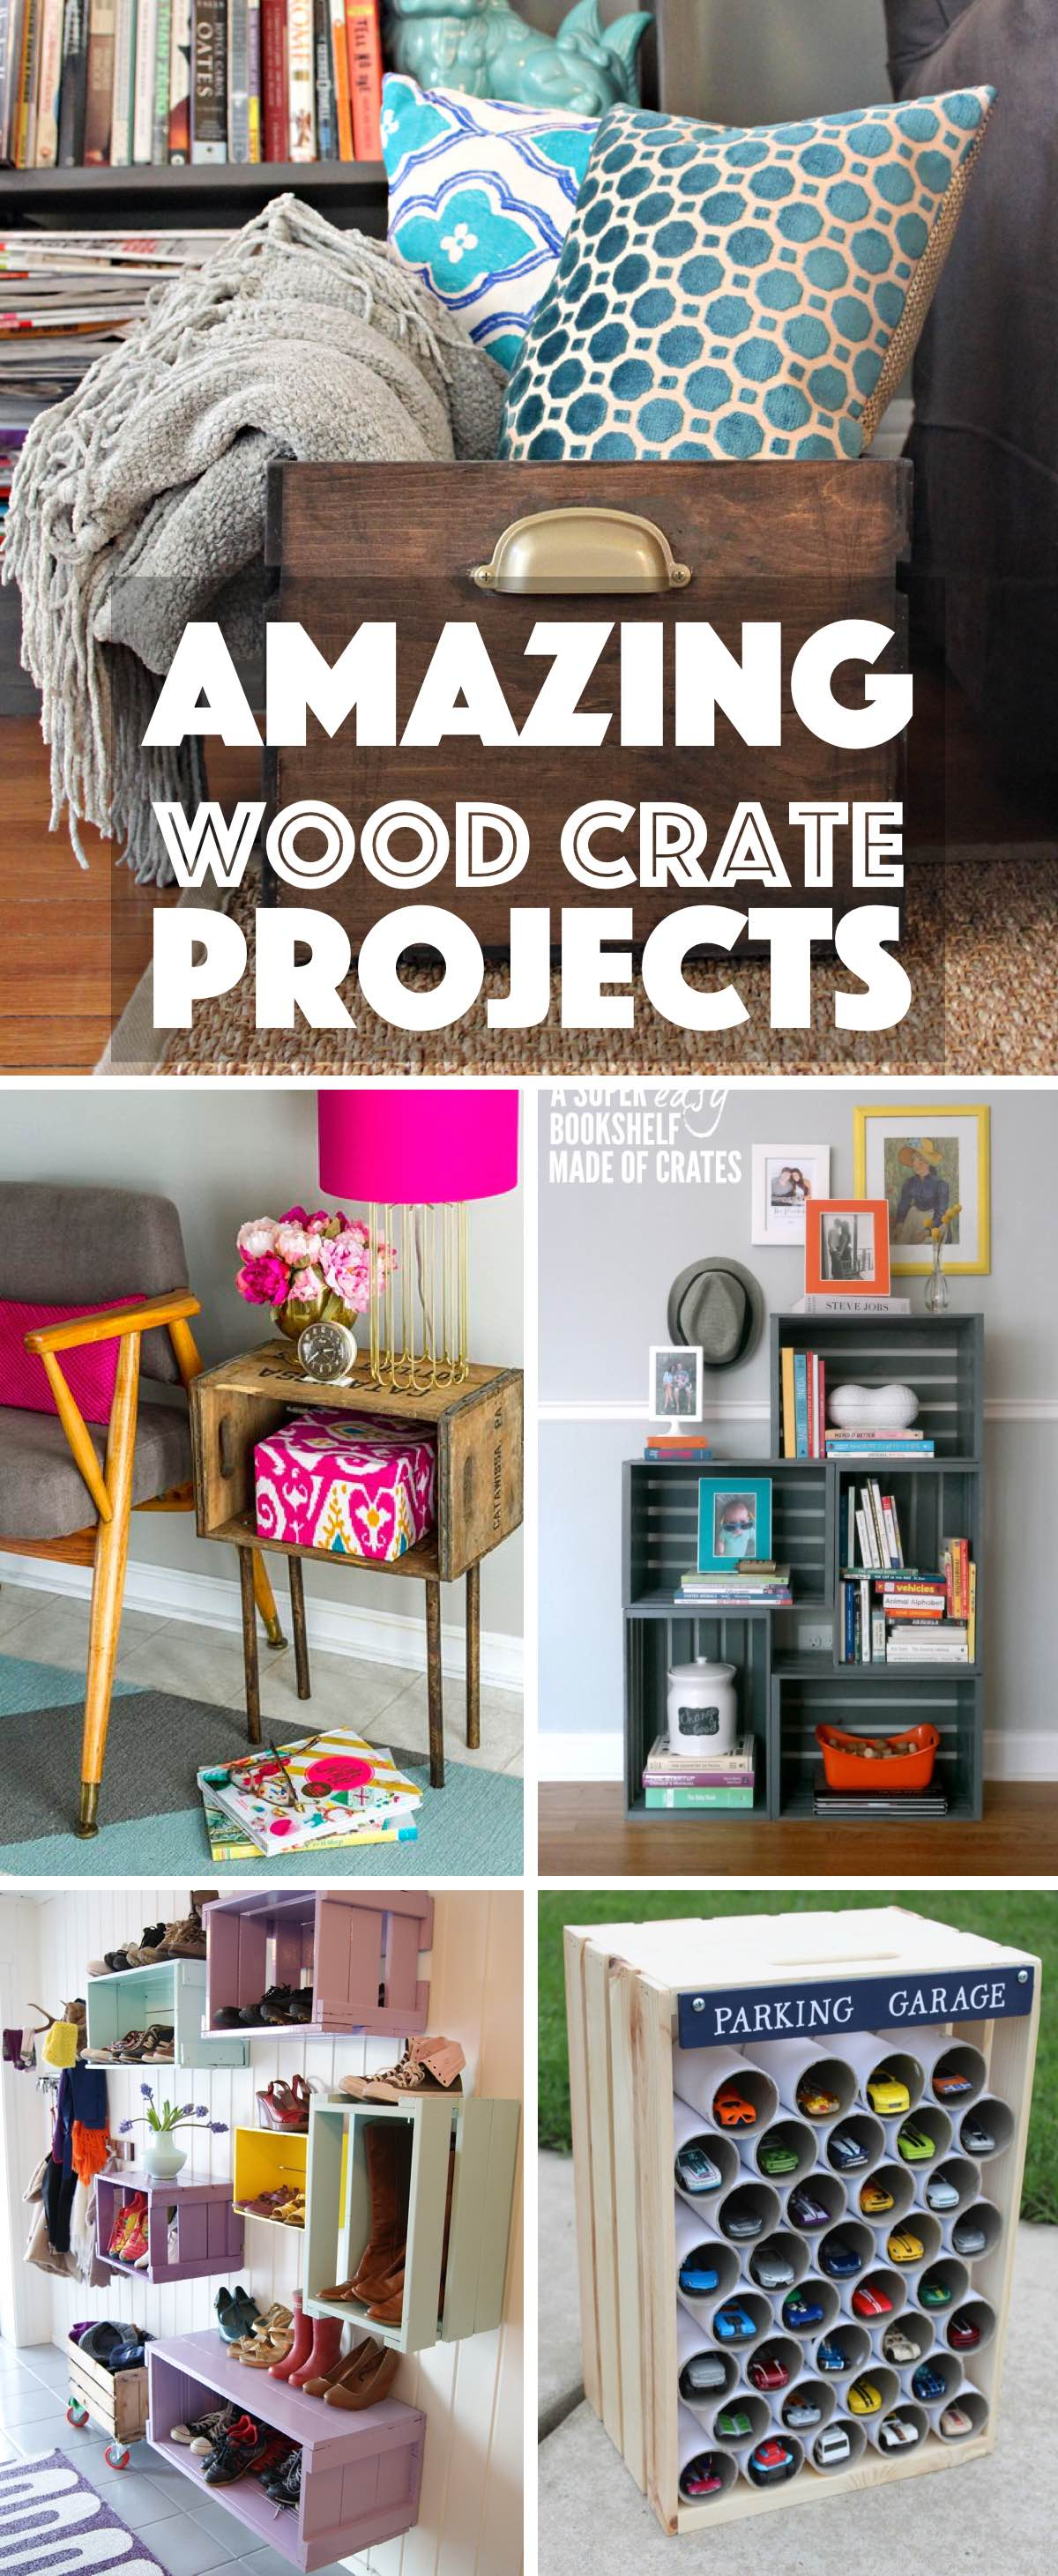 Amazing Wood Crate Projects That Range